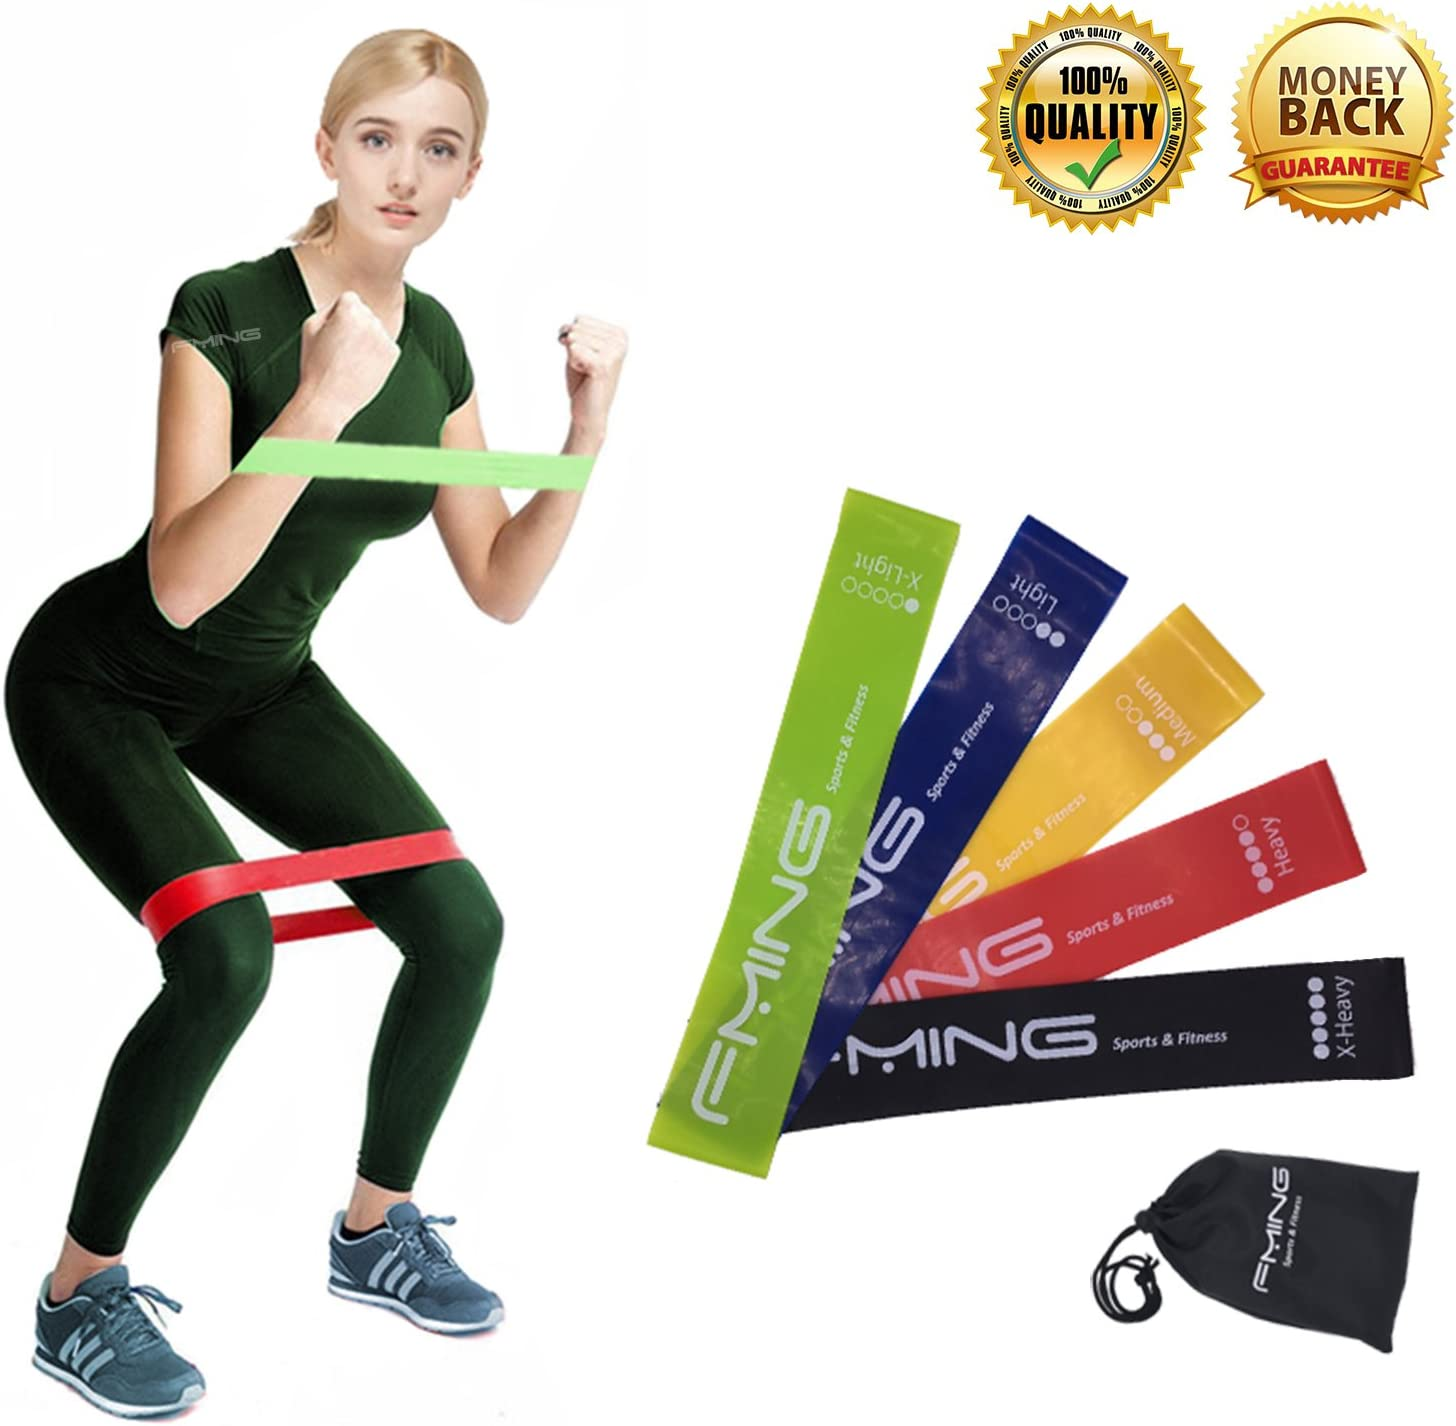 YOGA PILATES STRETCH HEAVY RESISTANCE LOOP BAND EXERCISE FITNESS GYM TRAINING